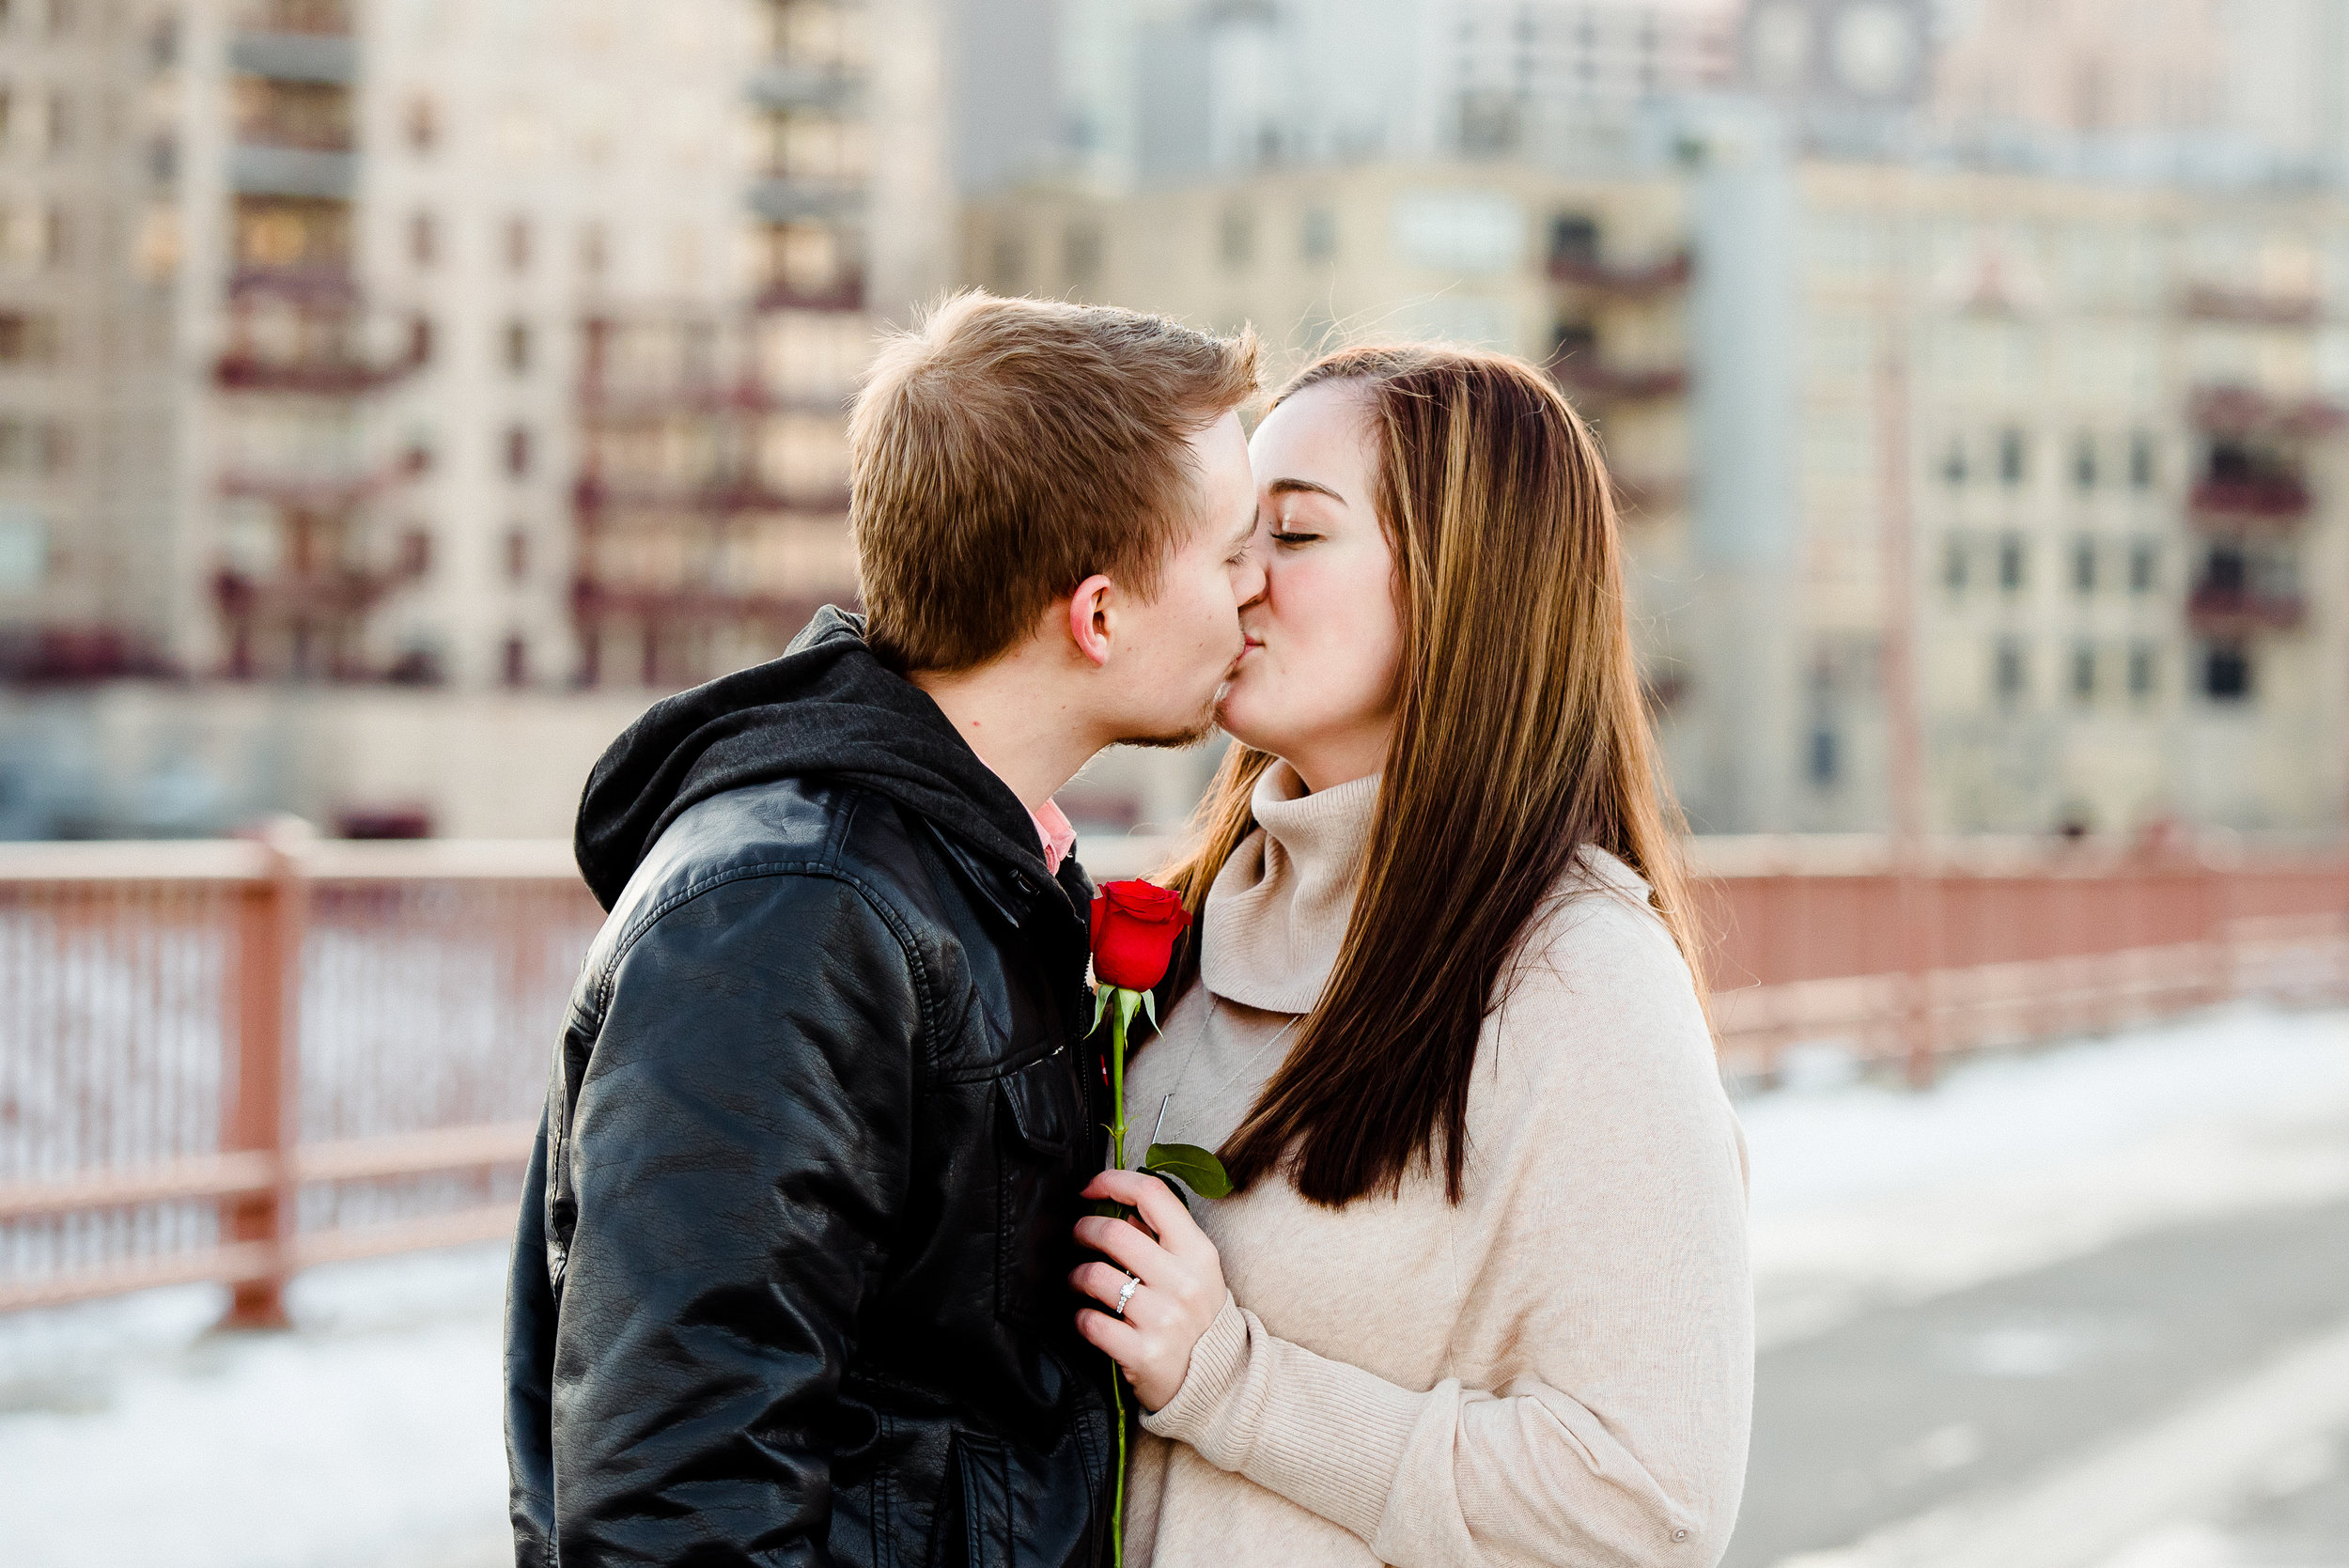 How He Asked - Winter Proposal at Stone Arch Bridge in Minneapolis, MN - Twin Cities Minnesota's best proposal photographer